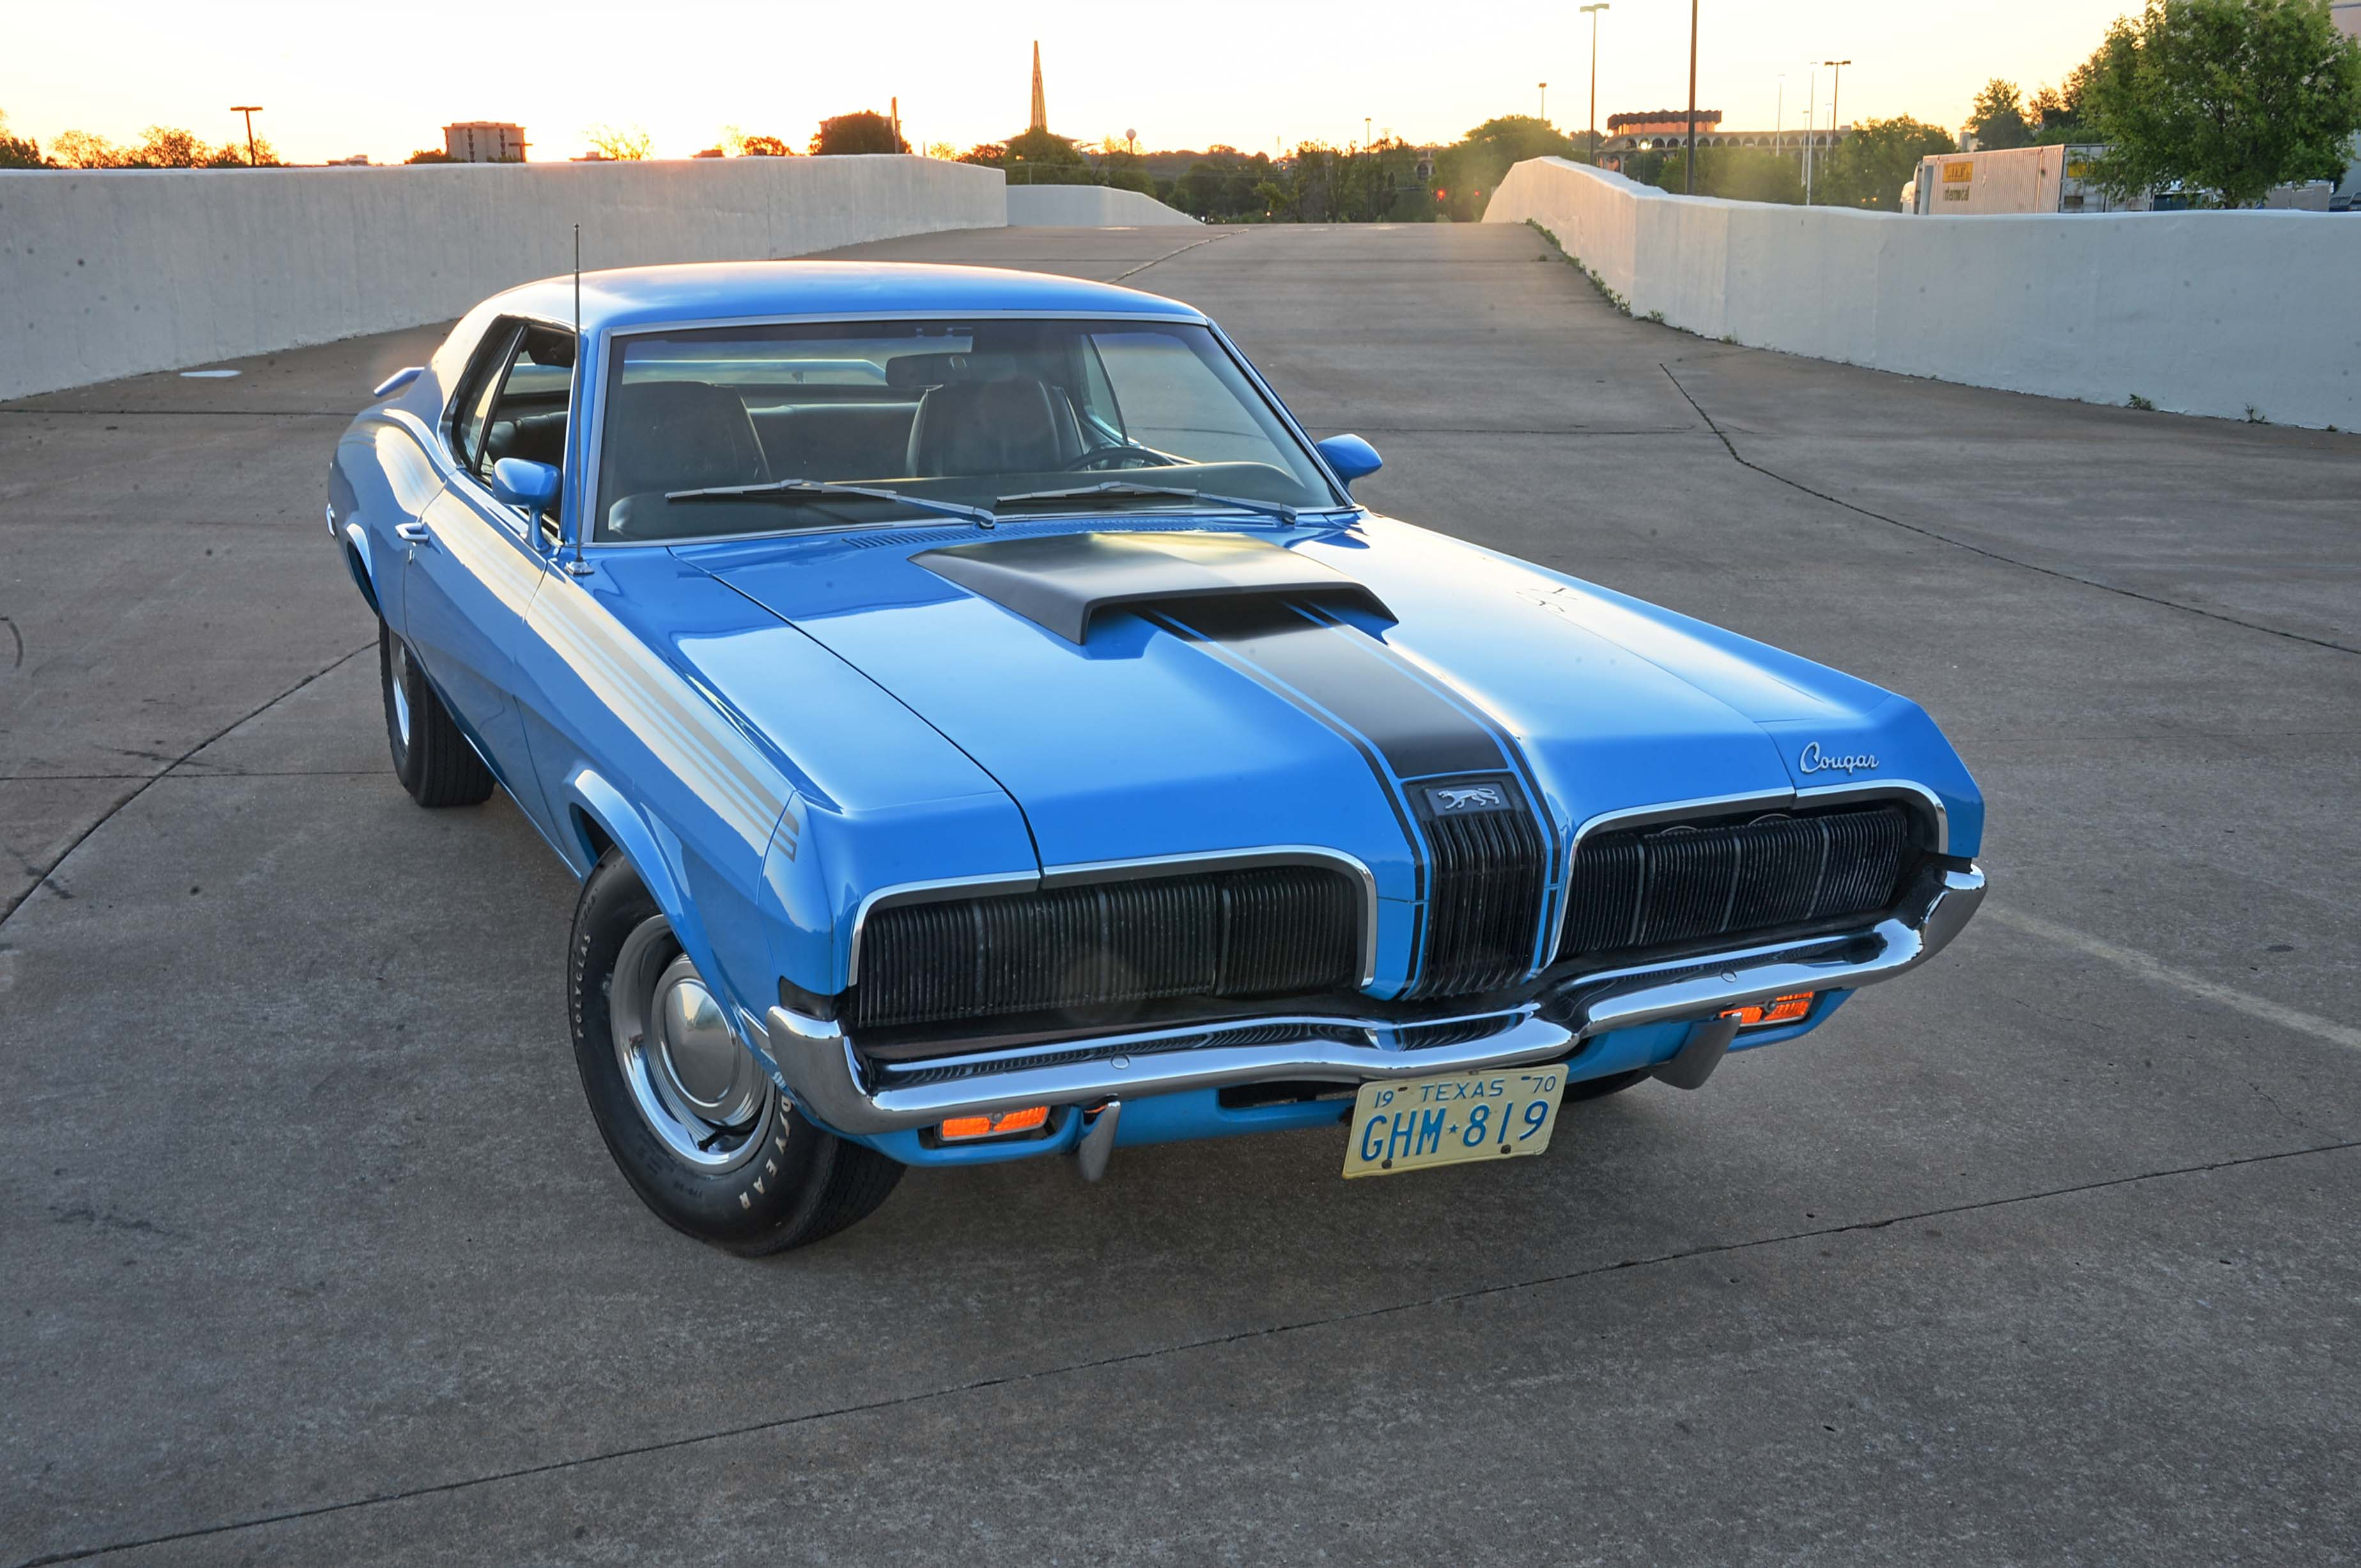 Very Rare 1970 Mercury Cougar Boss Eliminator May Be the Finest     842248 20